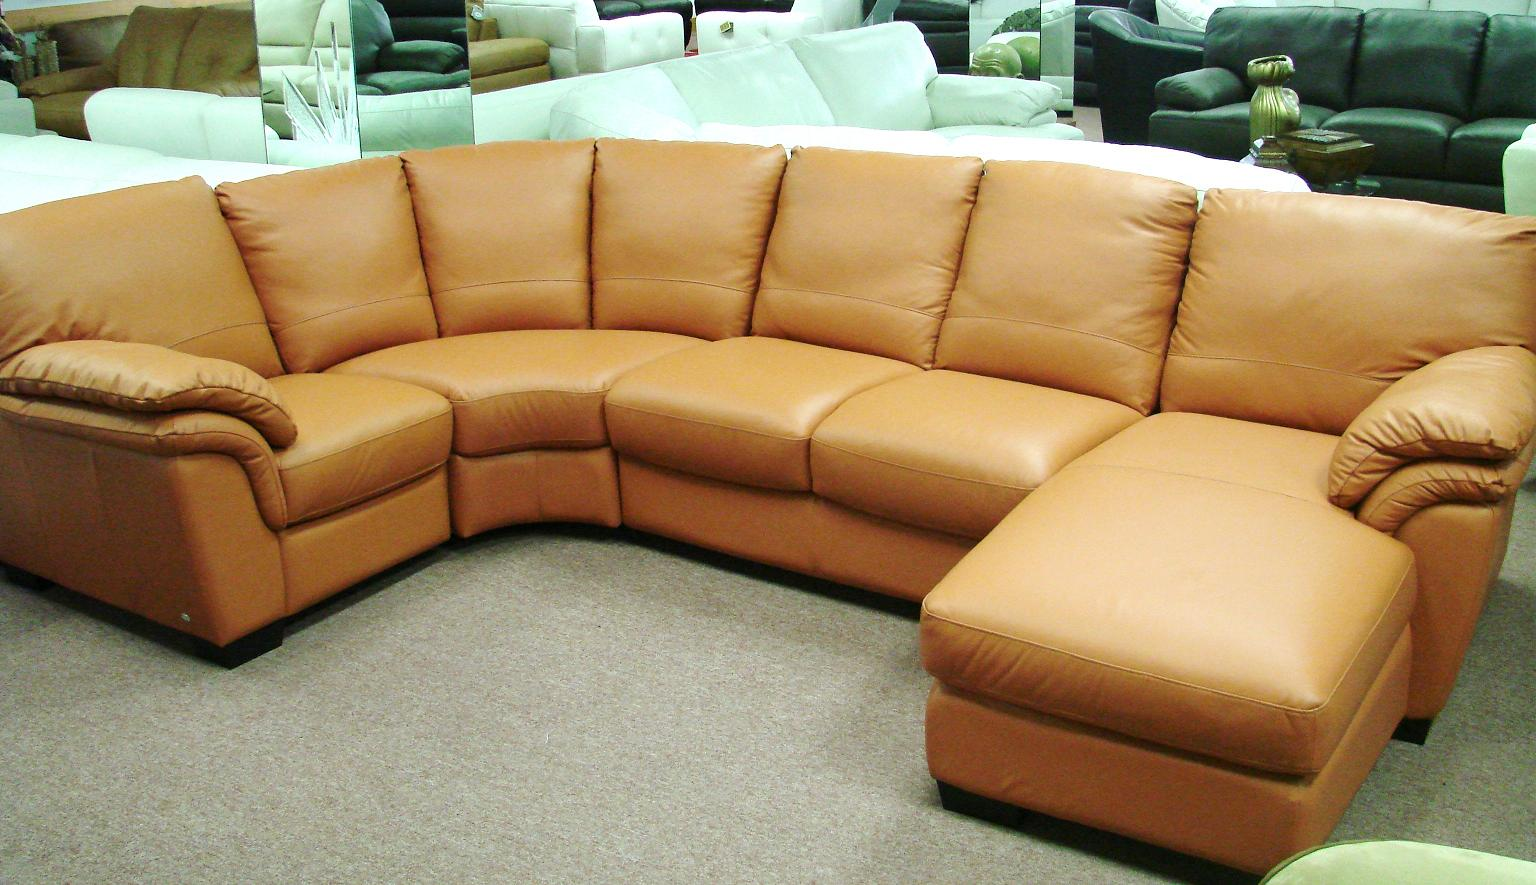 italsofa leather chair sofa creations penrose auckland furniture xxx suck cock